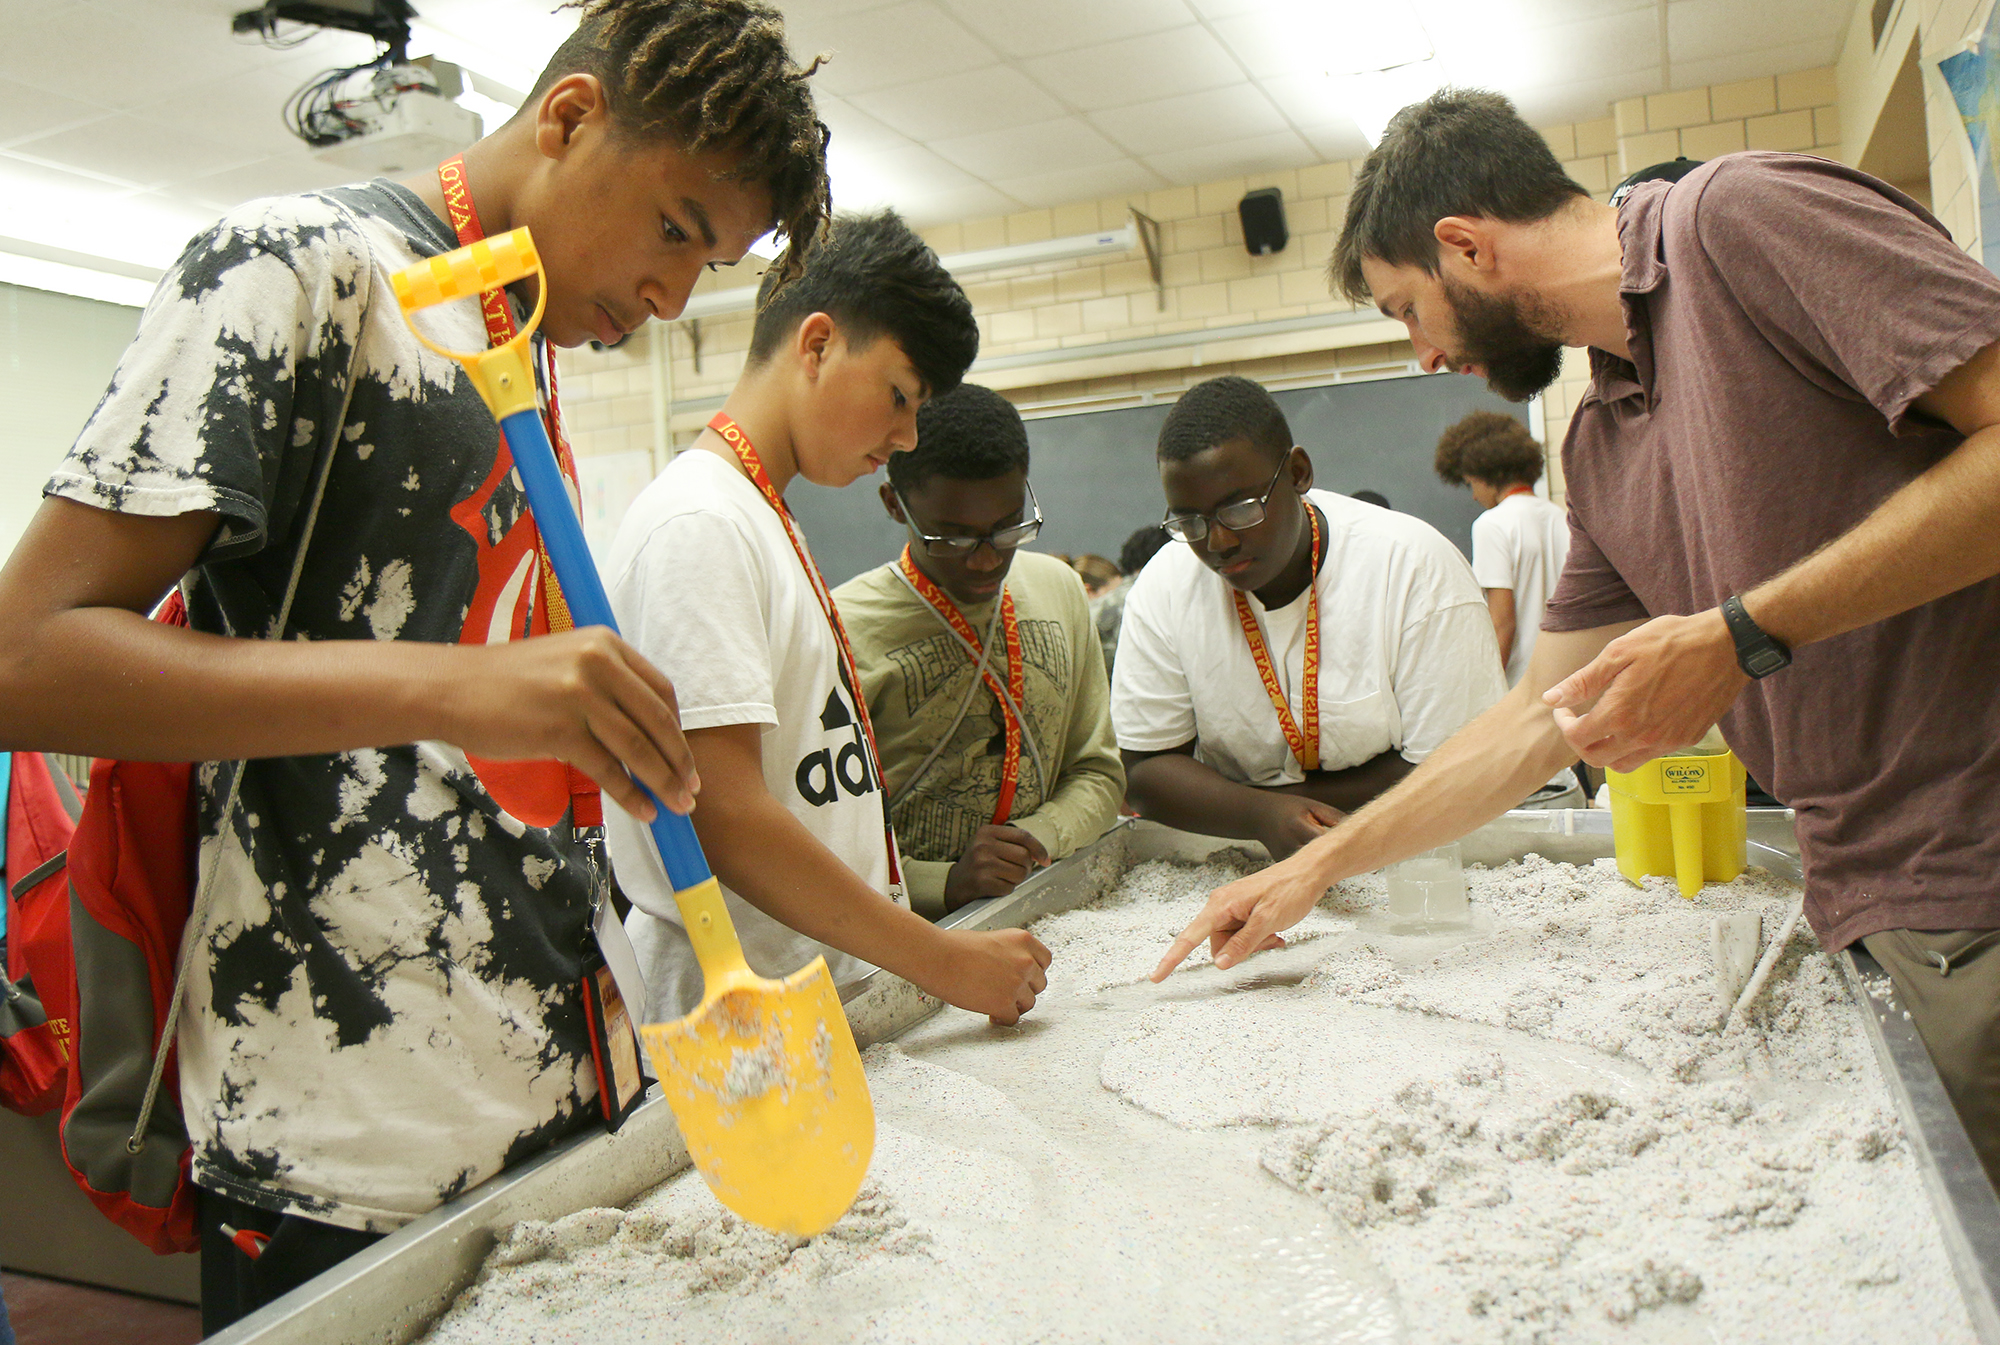 Students stand around a table filled with sand and a stream of water.